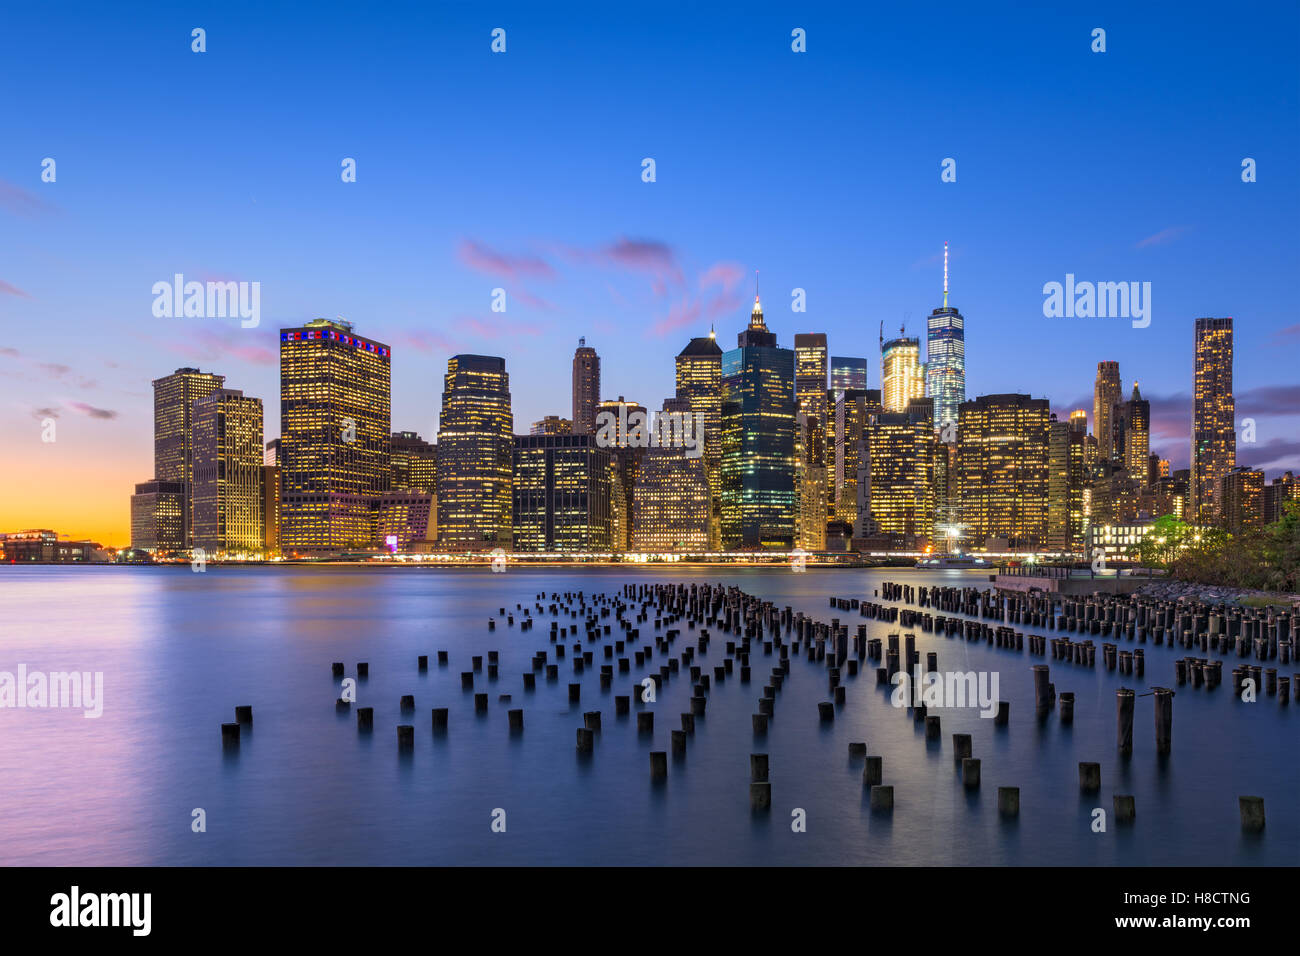 New York City skyline on the East River. - Stock Image